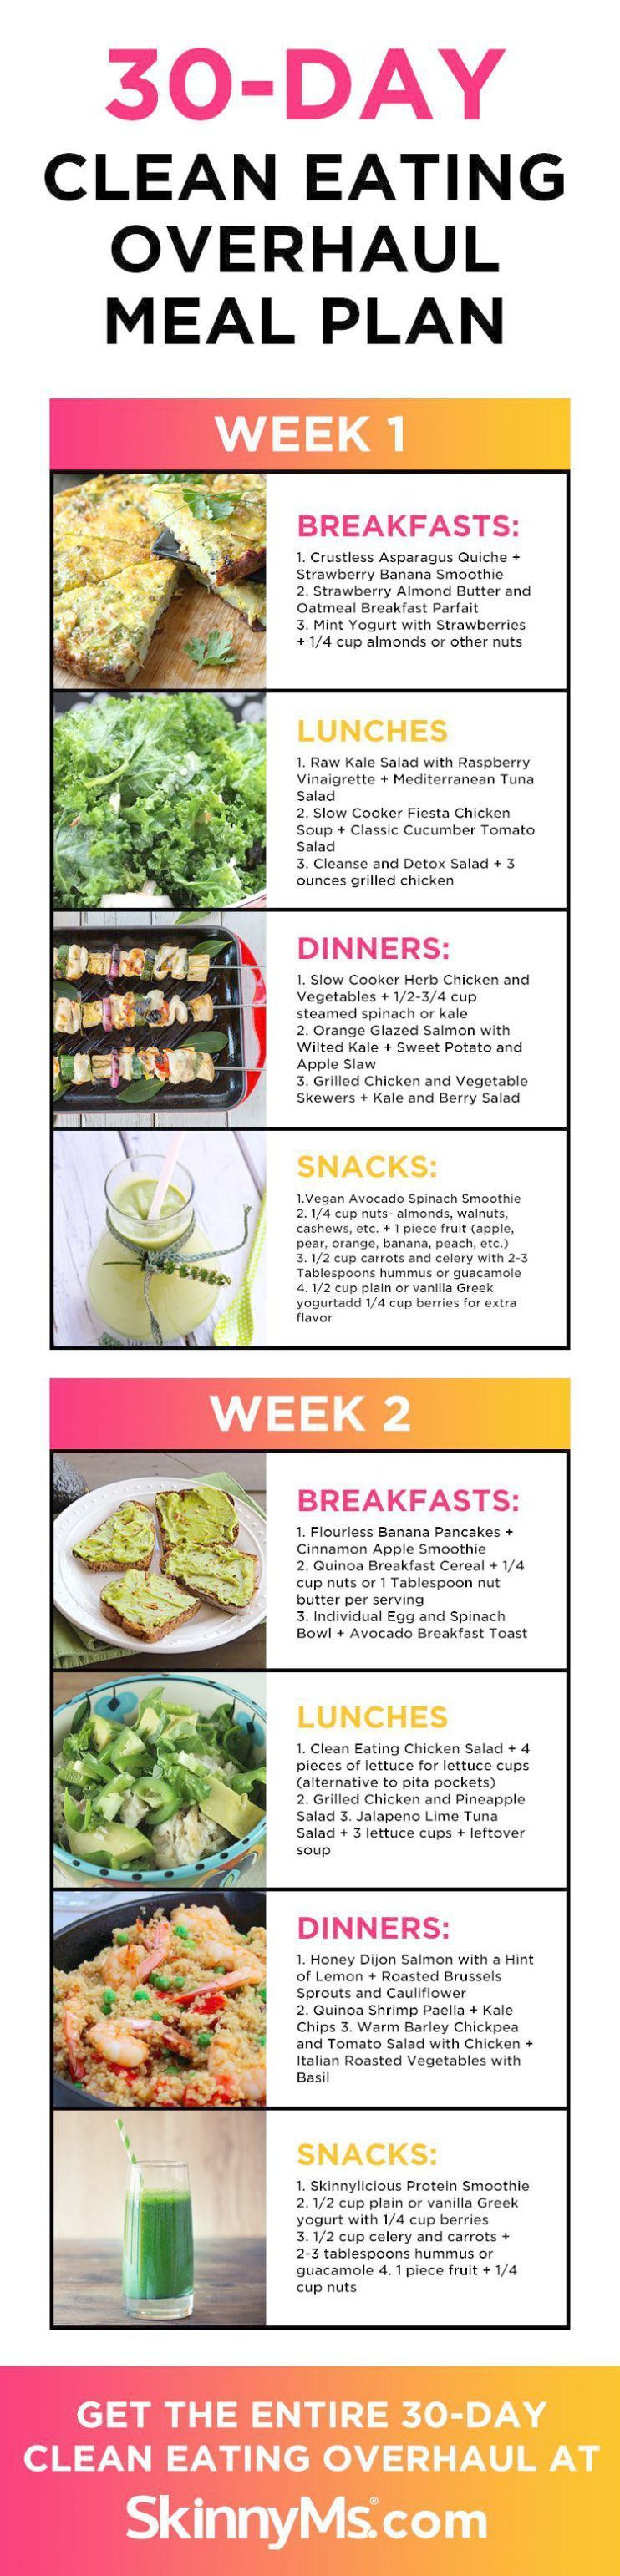 Clean Eating For Beginners Recipes Healthy Diet Plan Philippines Your Healthy Eating Habi Clean Eating For Beginners Healthy Eating Plan Healthy Eating Habits